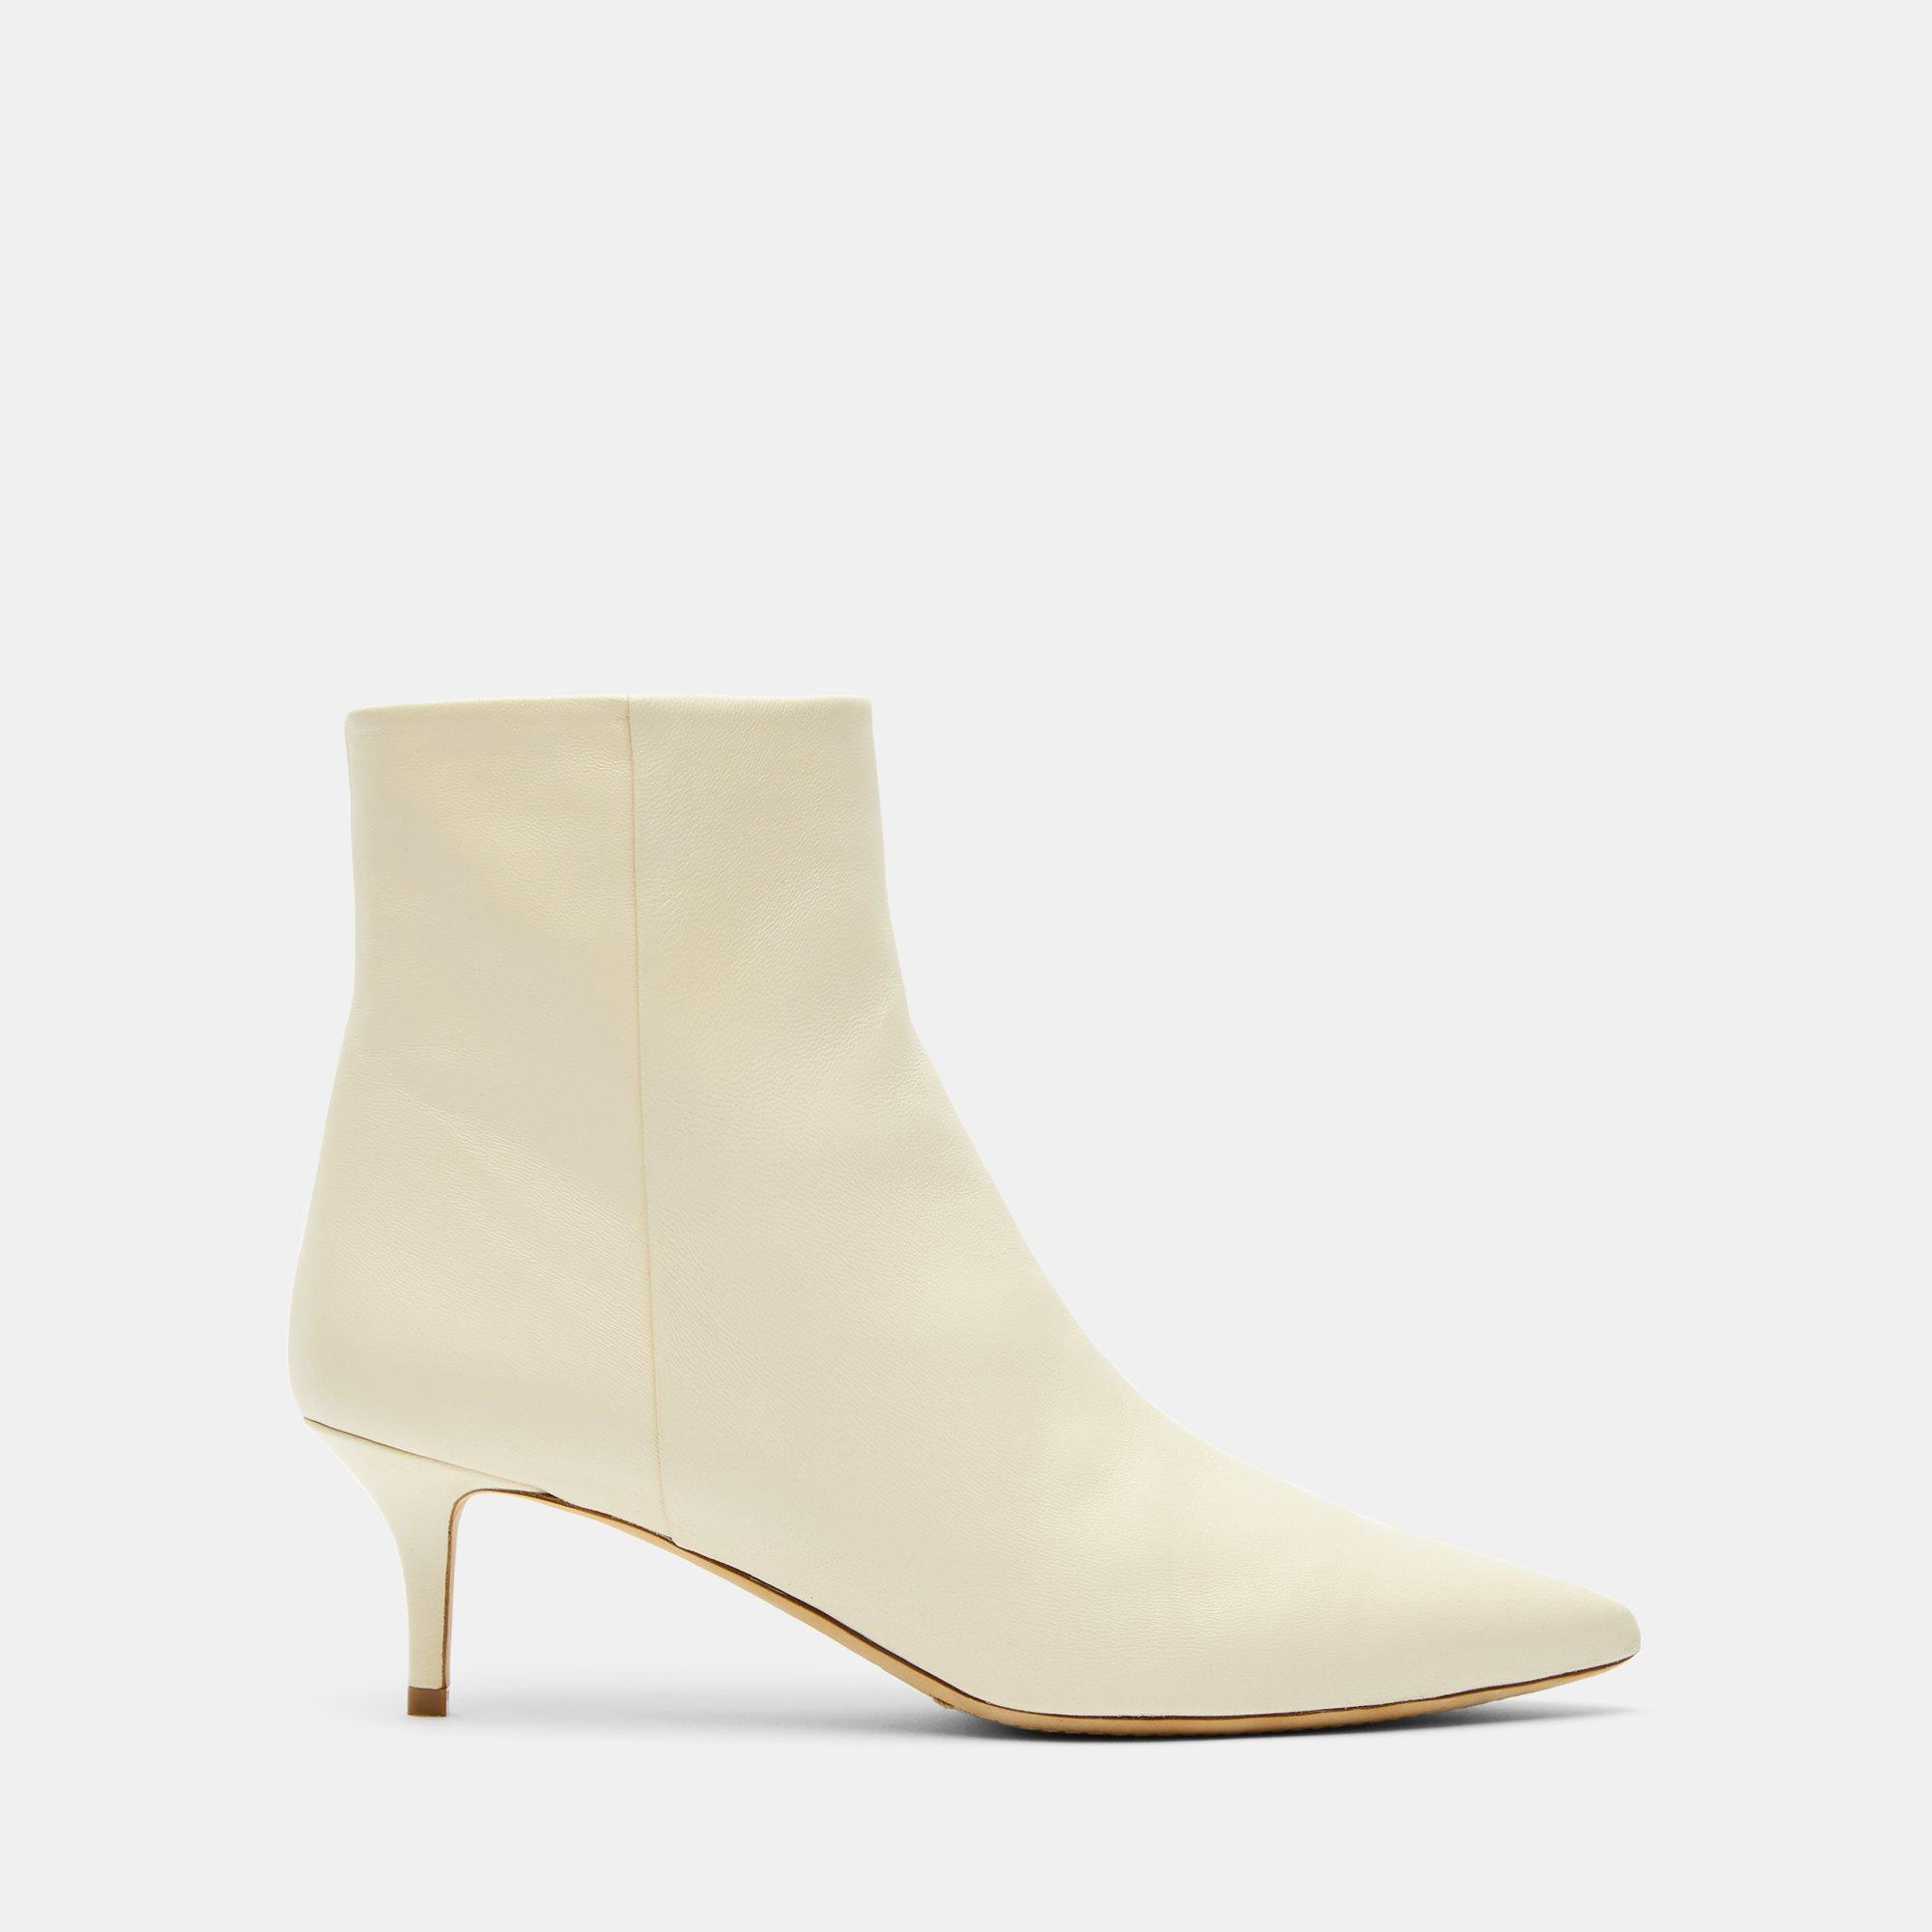 f31c52e9a6 Lyst - Theory Kitten Heel Bootie In Leather in White